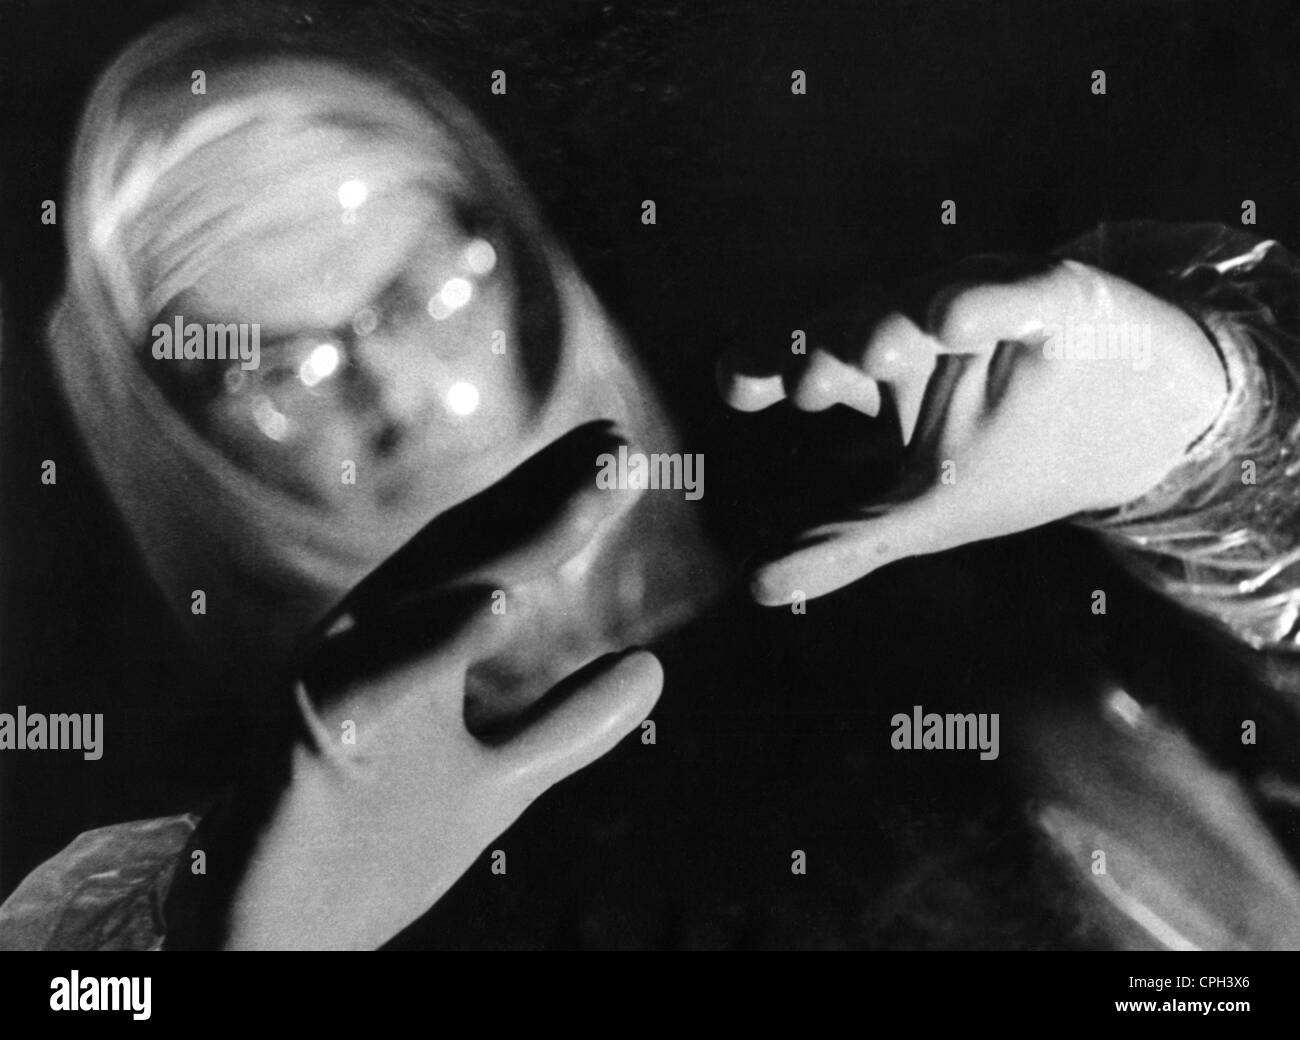 science, sciences, nuclear research, radiation suit, 1950s, Additional-Rights-Clearences-NA - Stock Image